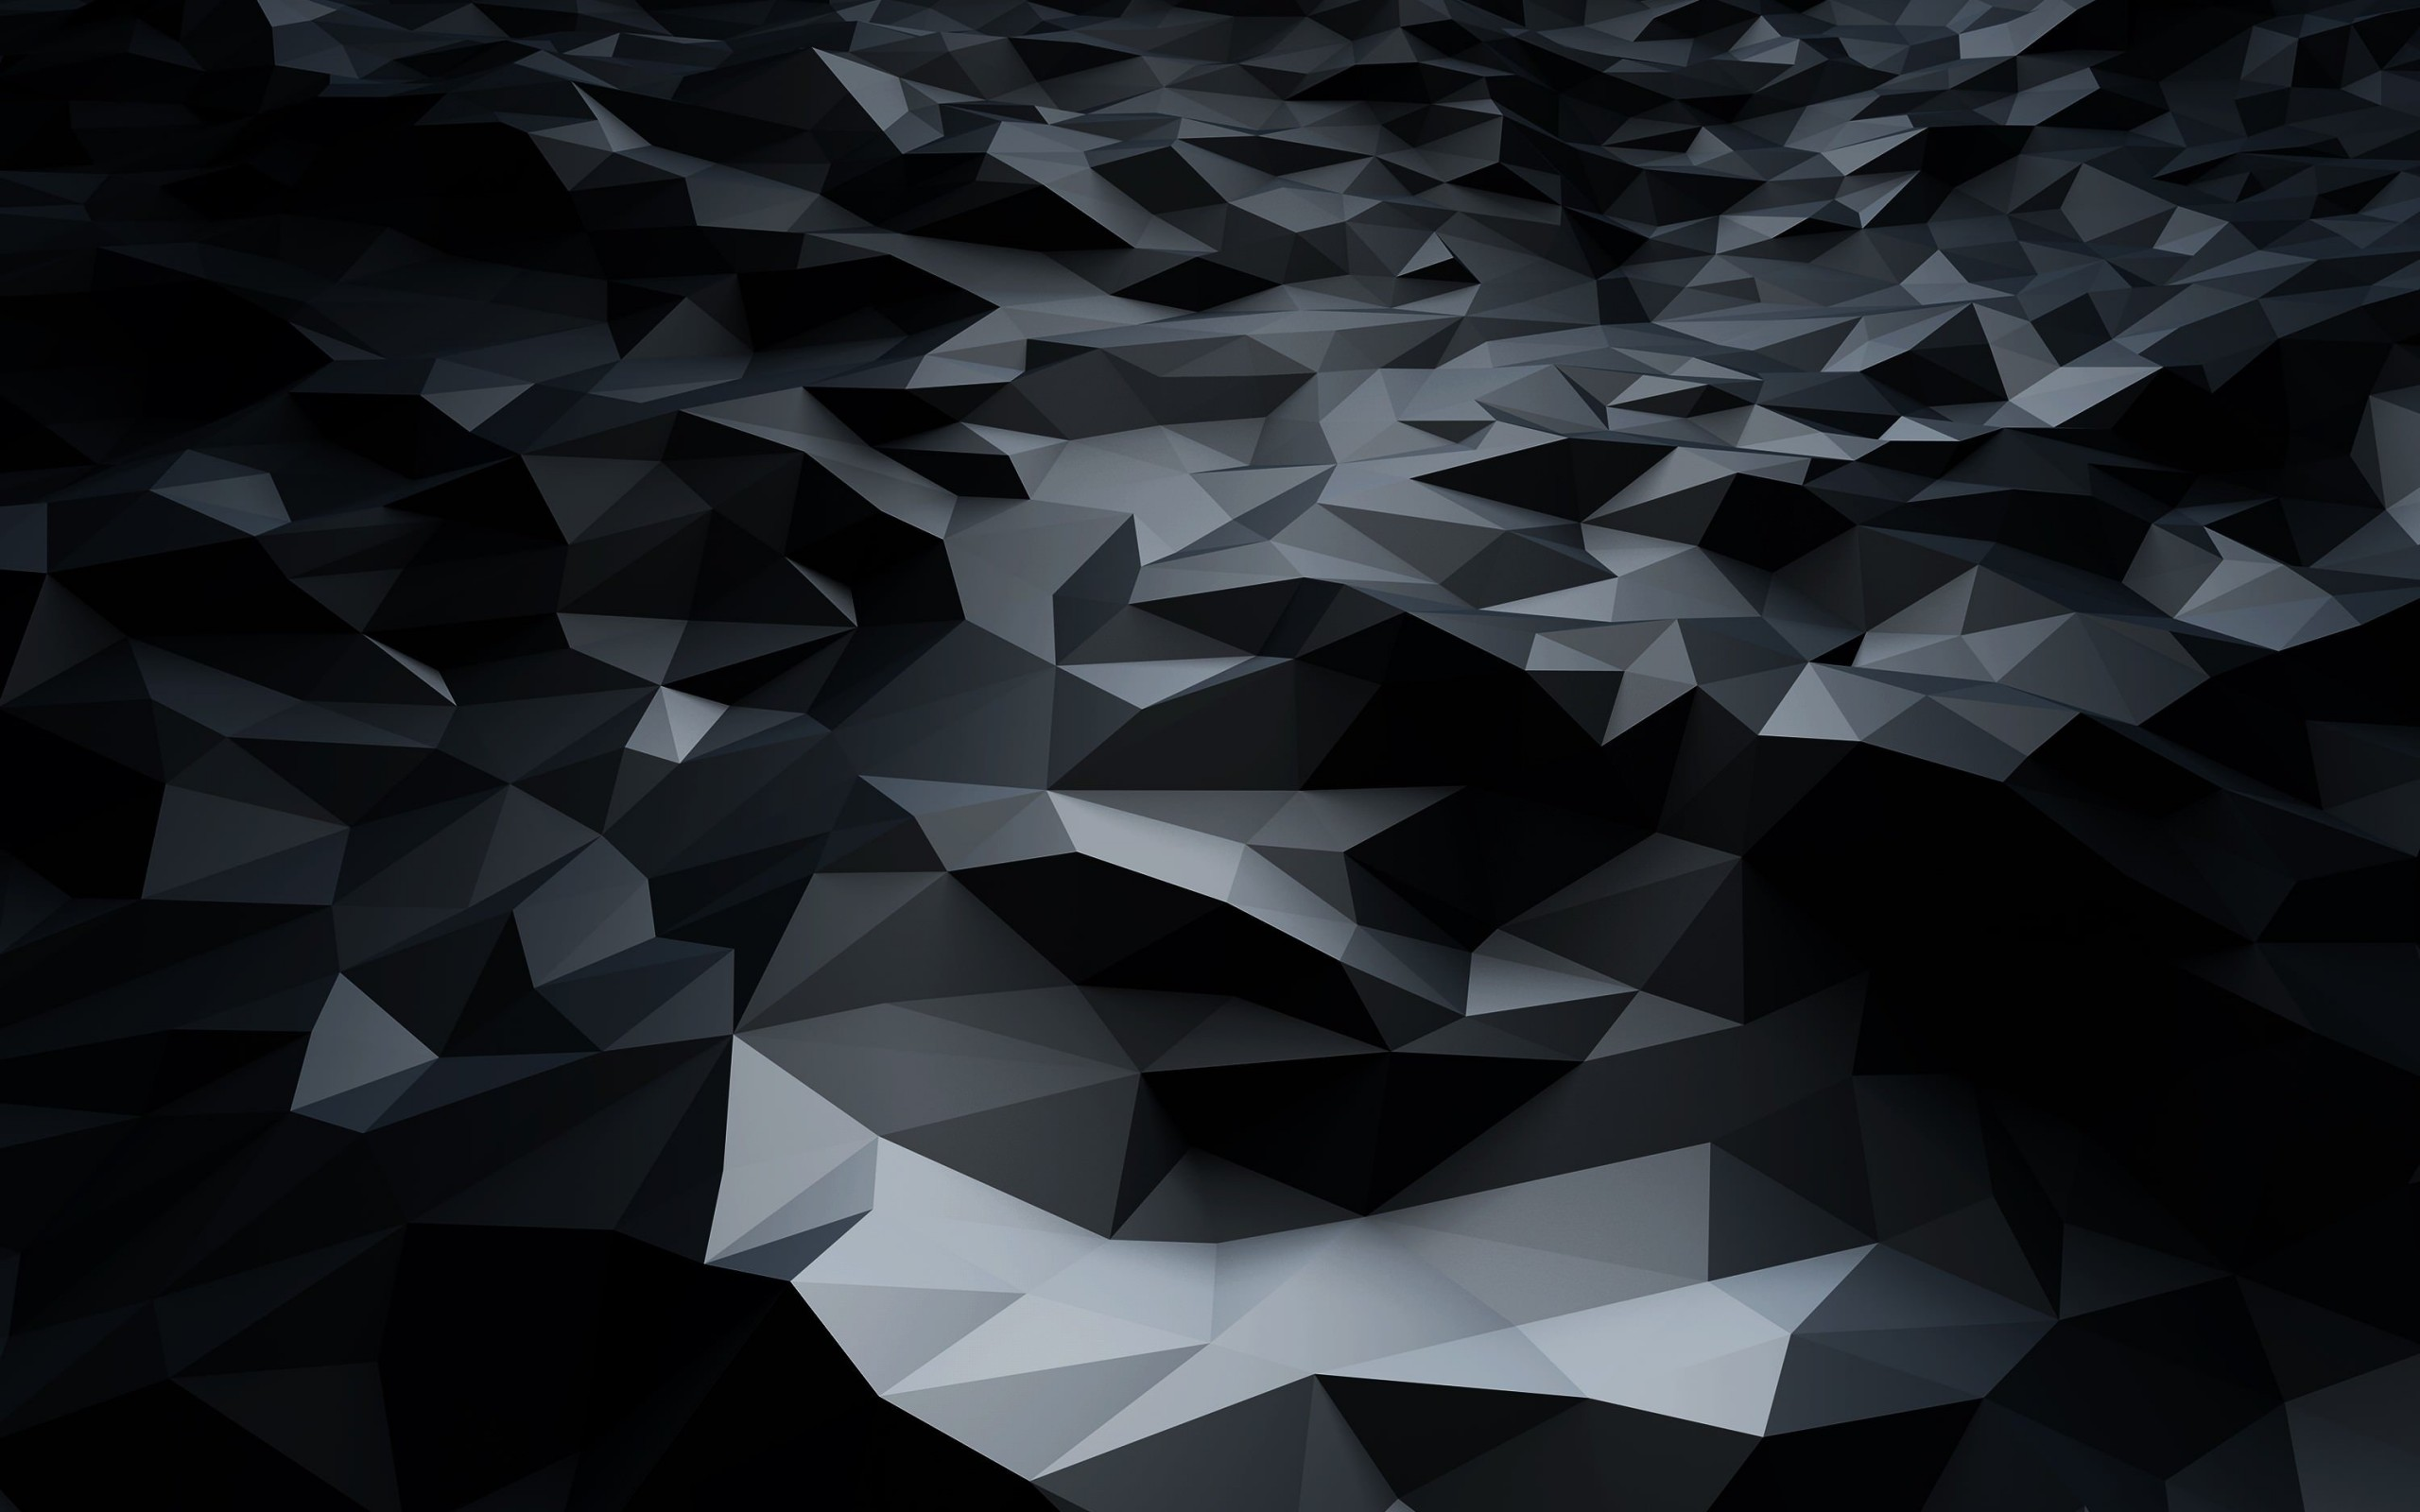 Abstract Black Low Poly Wallpaper for Desktop 2560x1600